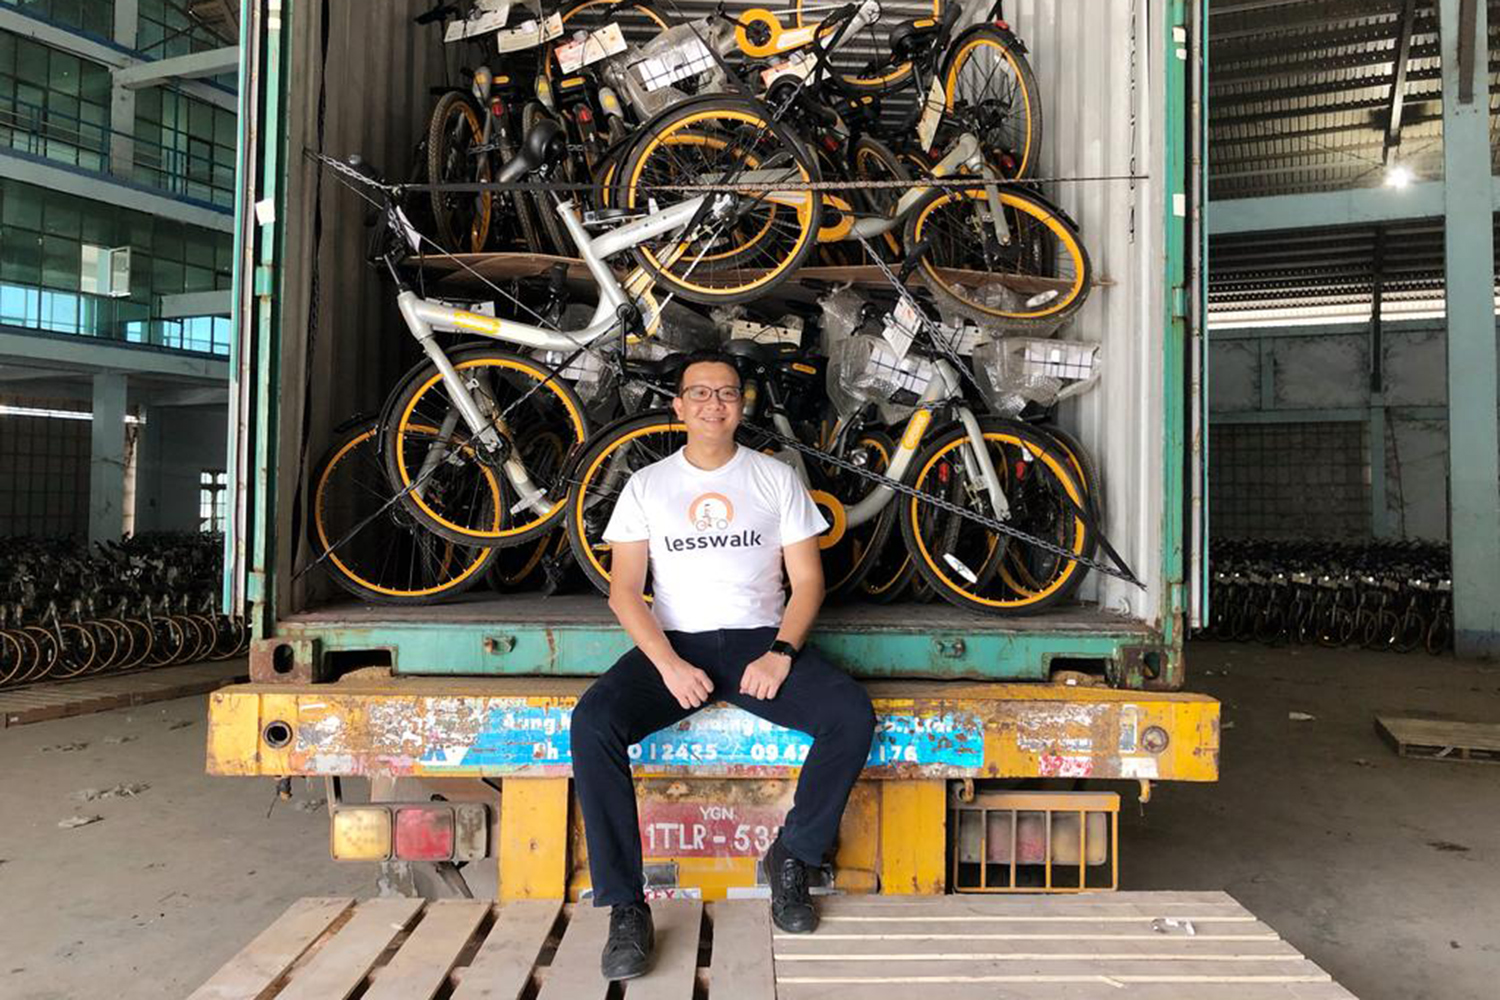 Mike Than Tun Win said that the bicycles he bought from Ofo and oBike in Singapore will be given for free to students living below poverty line in Myanmar and who need to walk 2 kilometres to school. (The Lesswalk Movement via TODAY photo)